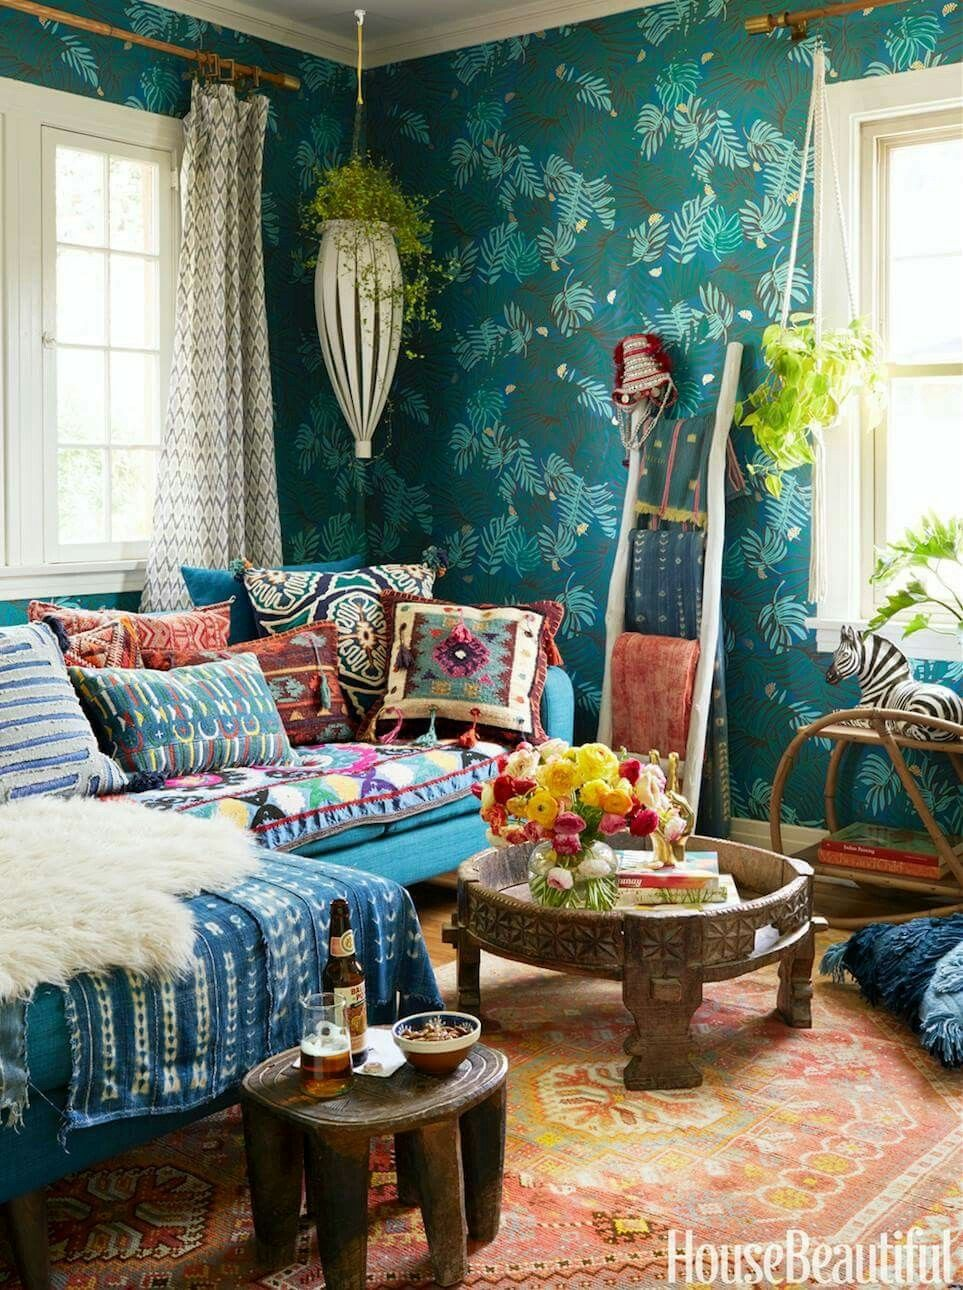 Bohemian Living Room Style Tuscan Furniture Rooms Life Boho Home Design Decor Nontraditional Elements Of Bohemia